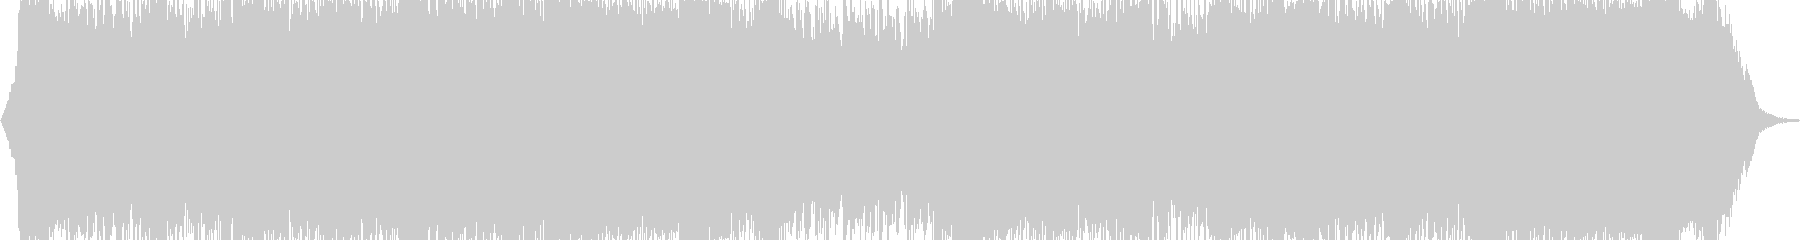 Orchestra Grand Battle BGM 40's unreproduced waveform